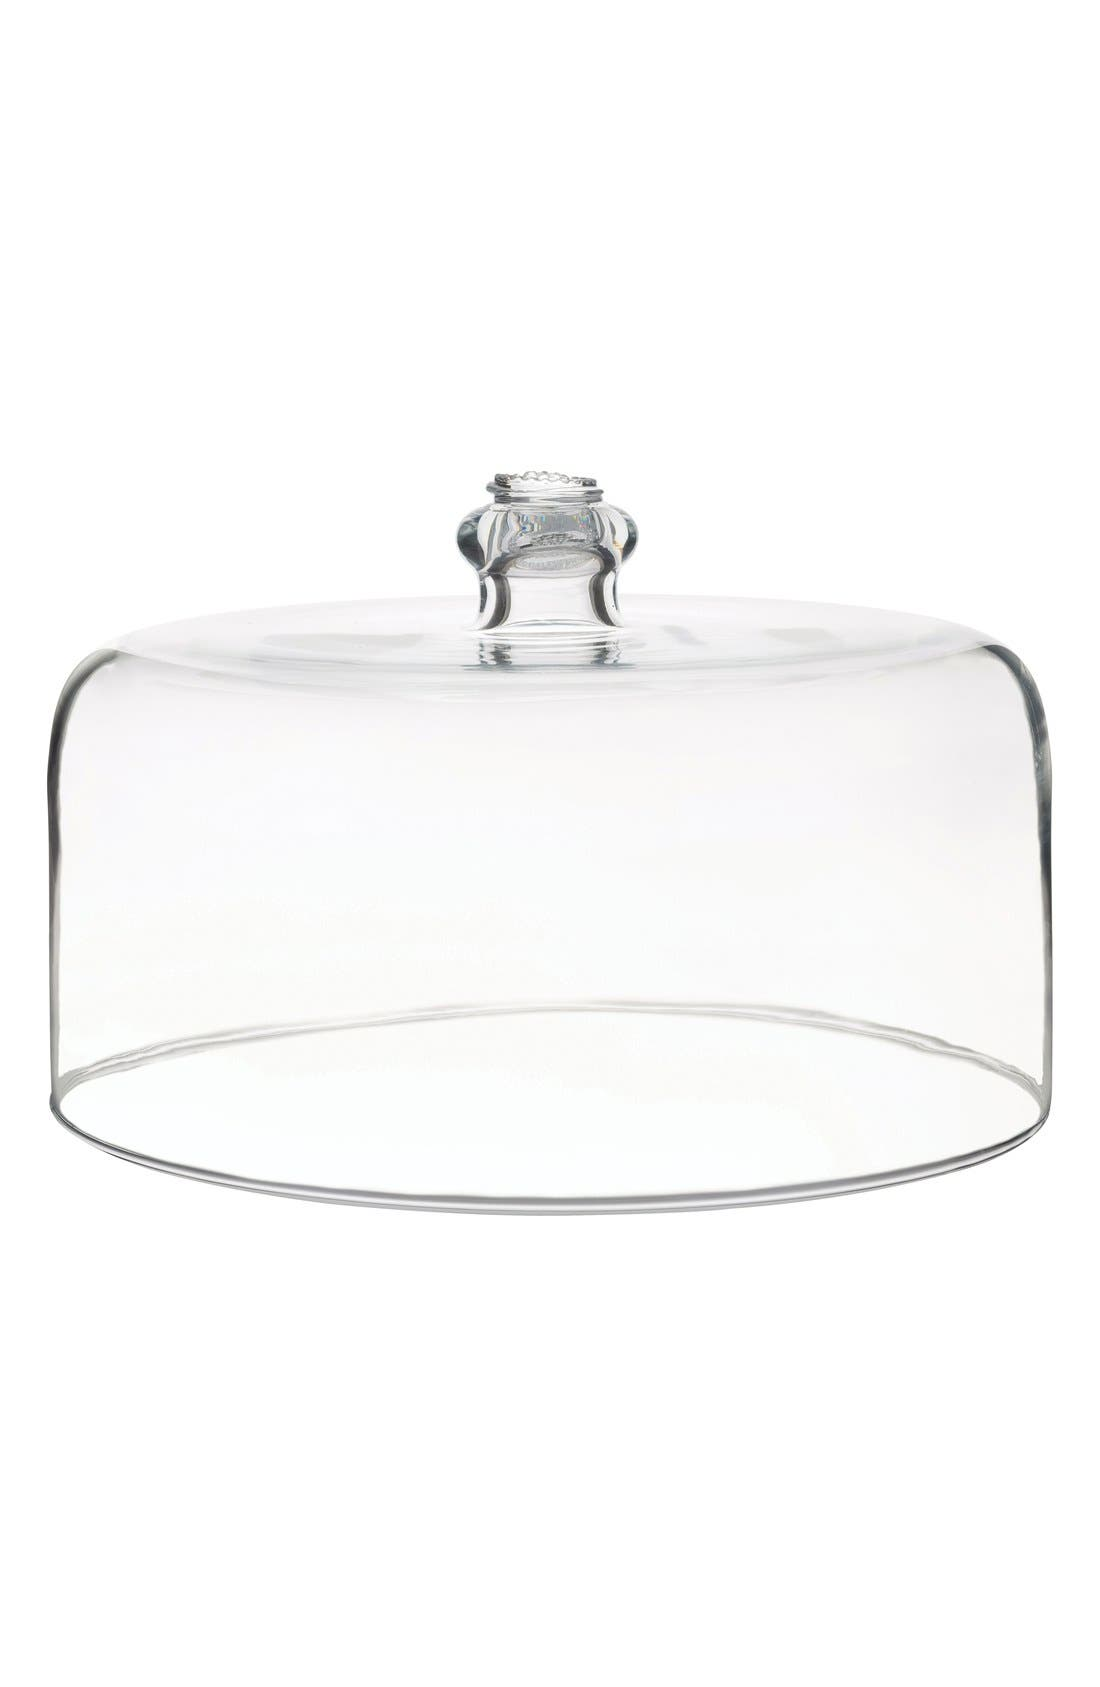 Berry & Thread Glass Cake Dome,                             Main thumbnail 1, color,                             CLEAR